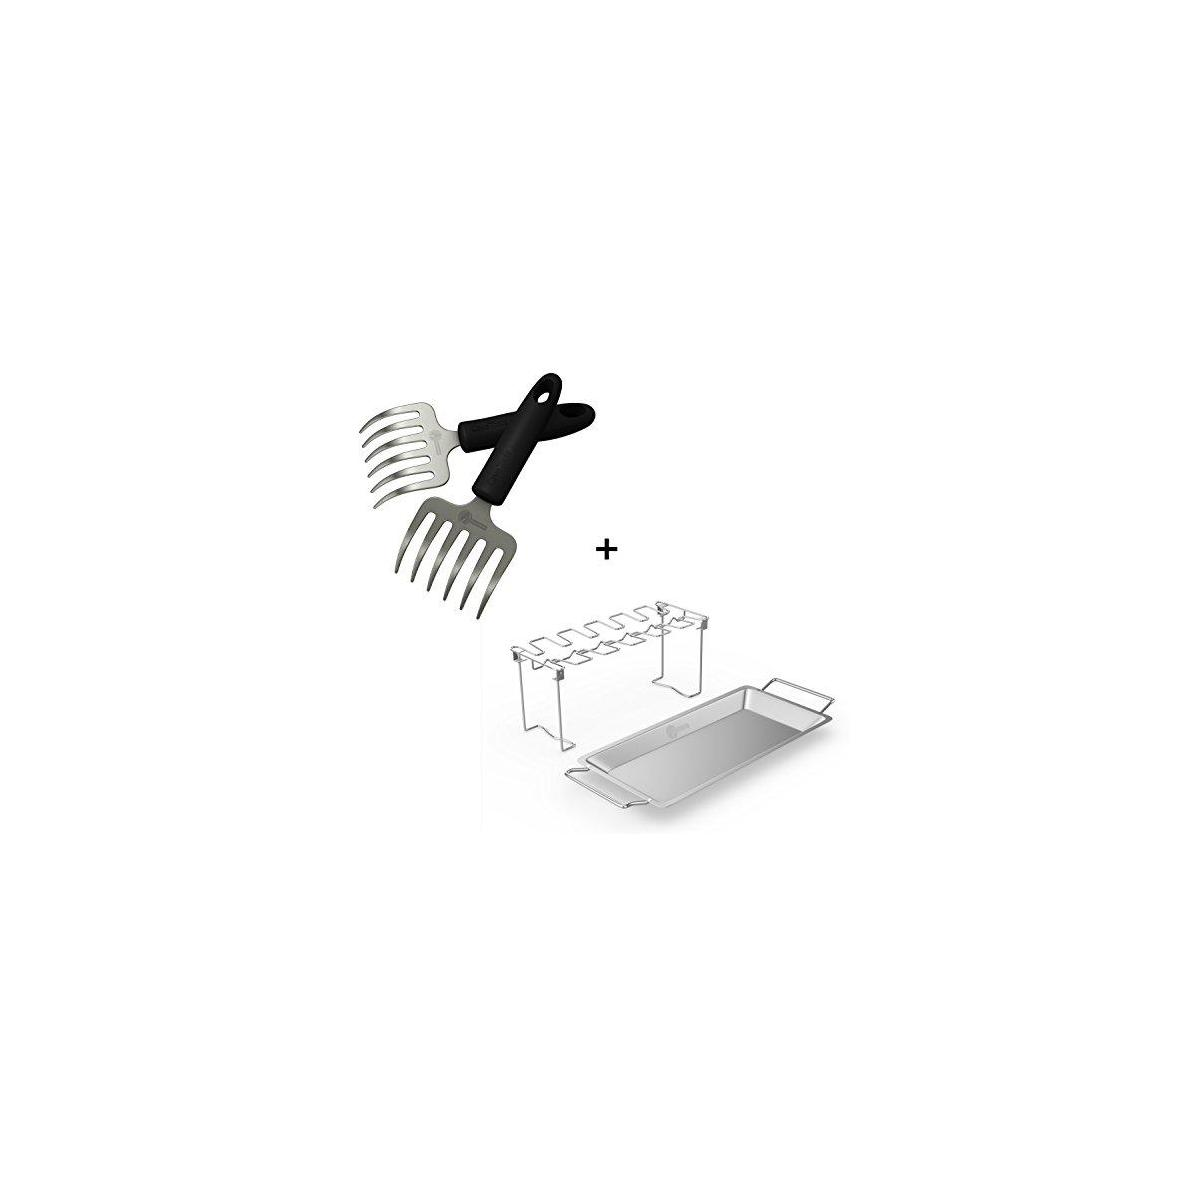 Pulled Pork Shredder Rakes + Chicken Wing & Leg Rack For Grill Smoker or Oven - Stainless Steel Roaster Stand & Drip Pan For Cooking Vegetables In BBQ Juices - Dishwasher Safe Barbecue Accessories